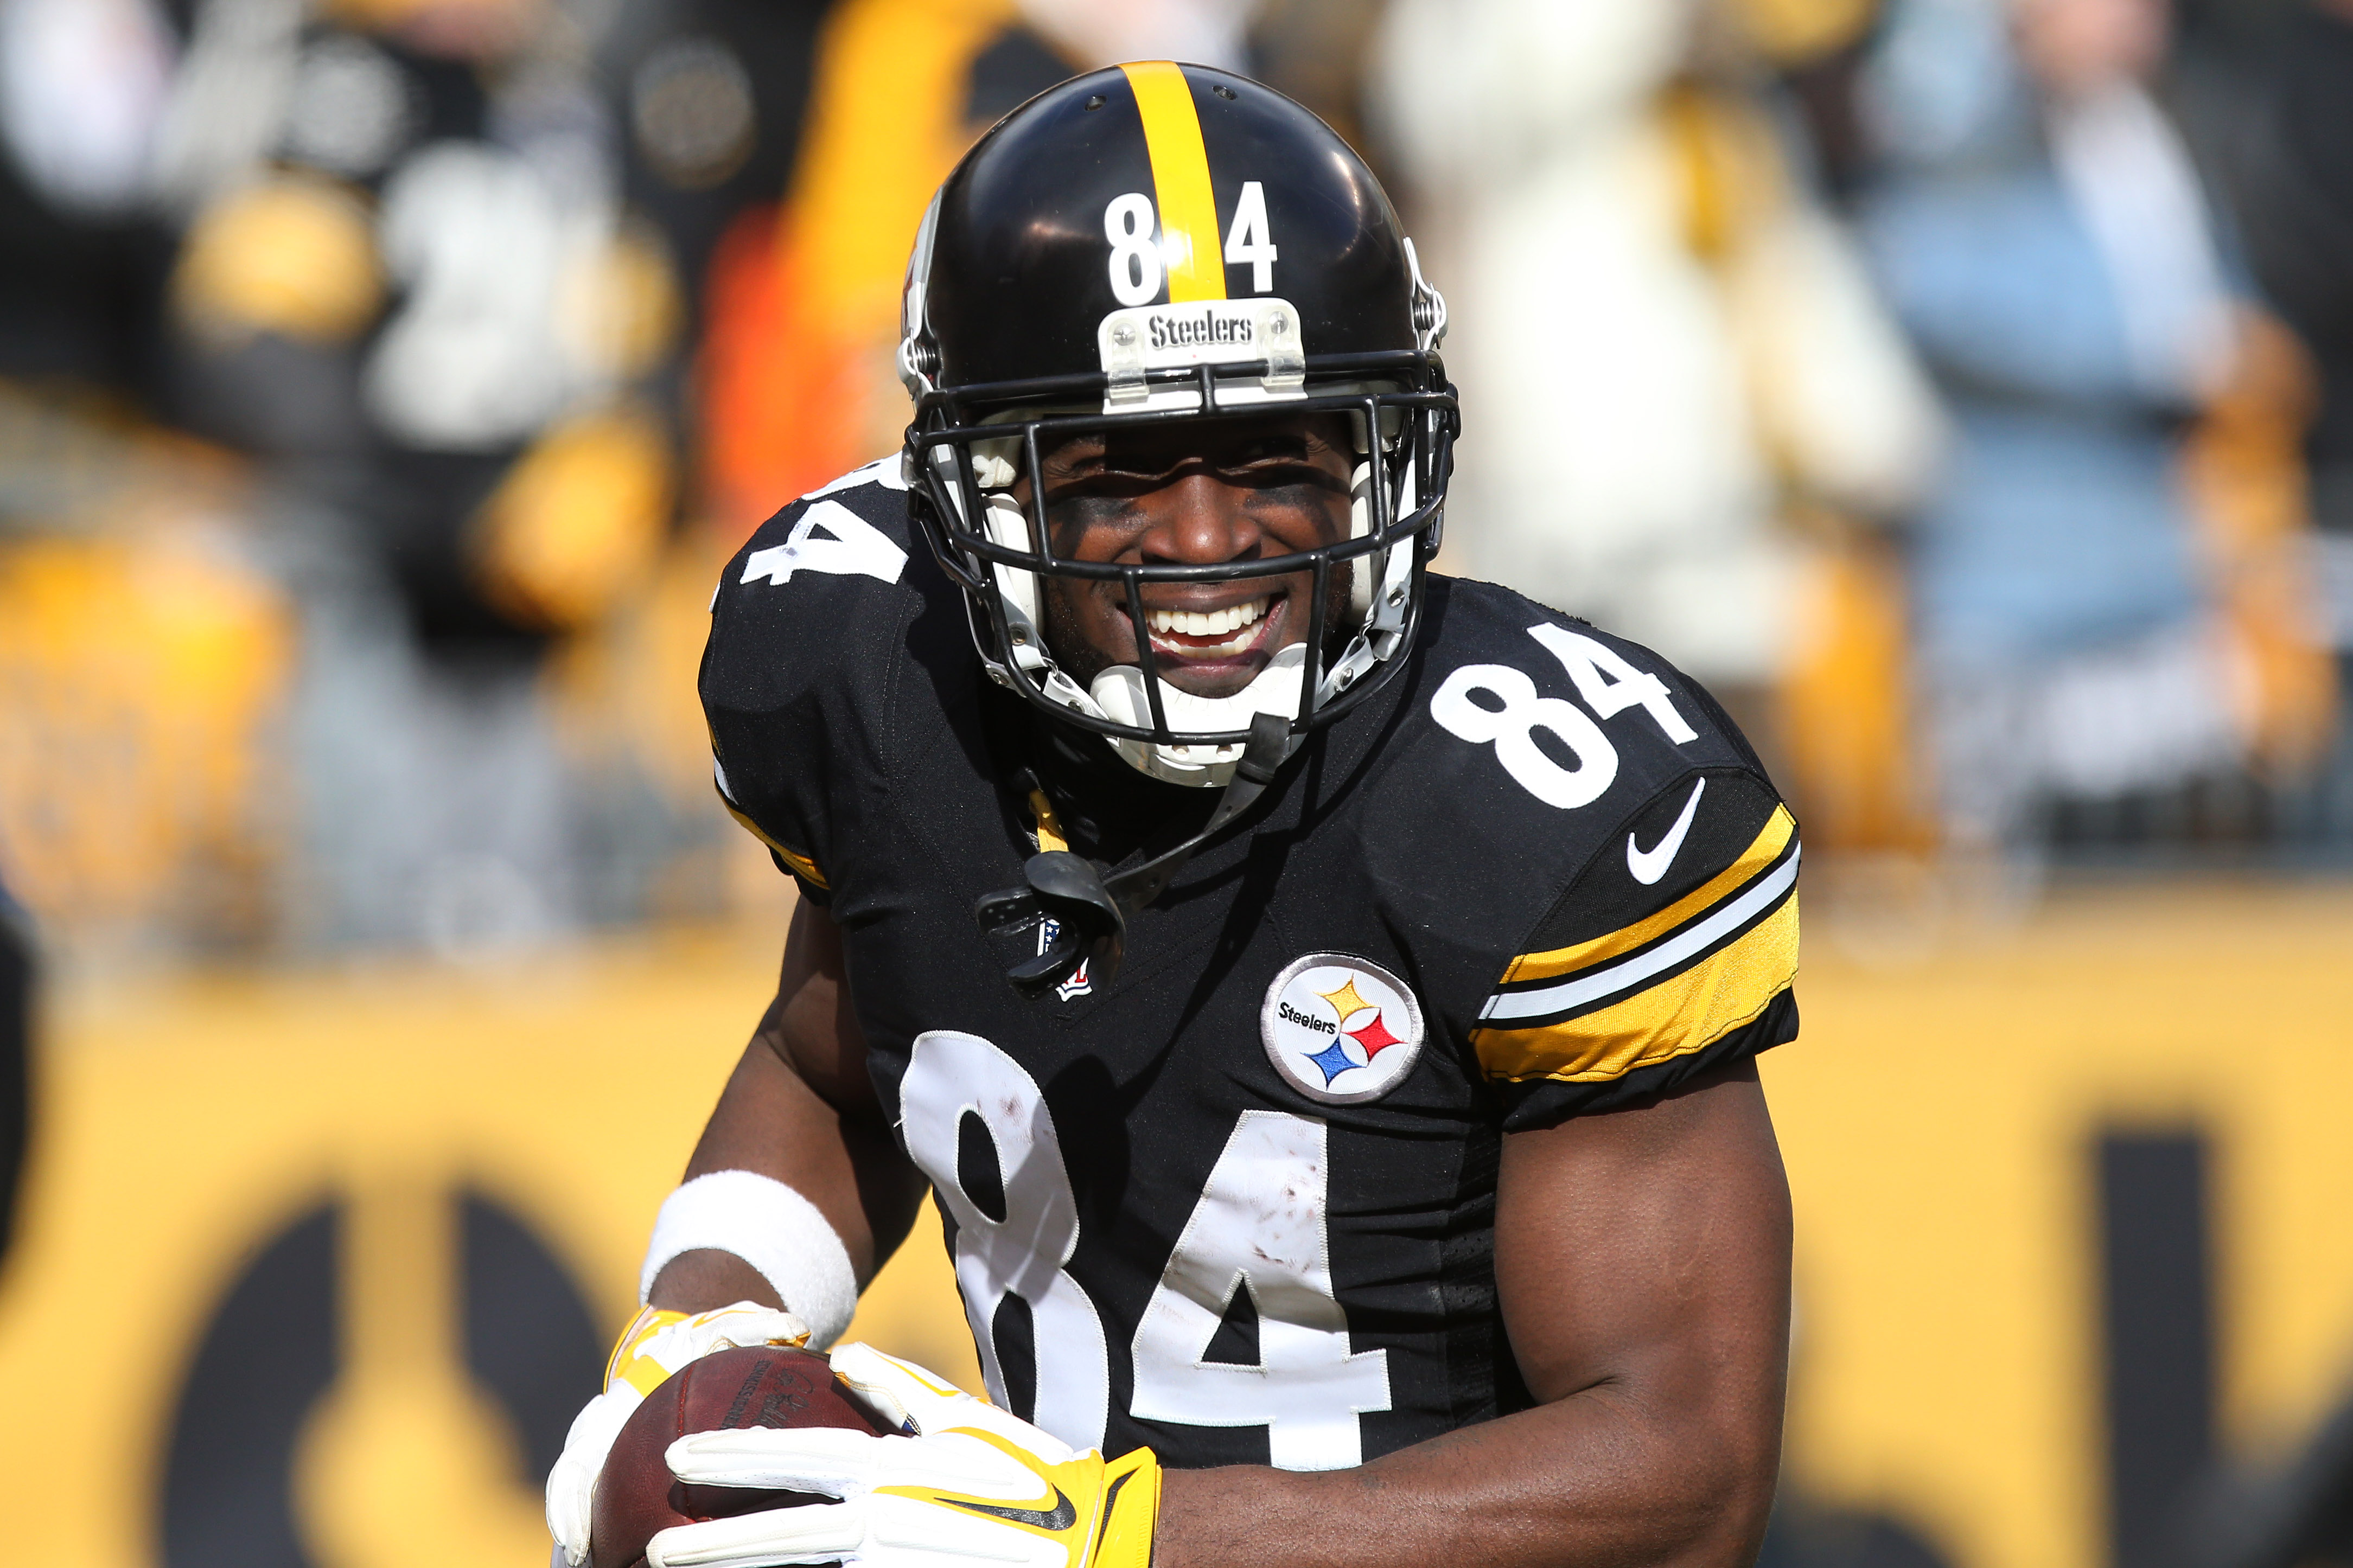 Saints & Raiders rumored to be interested in Steelers WR